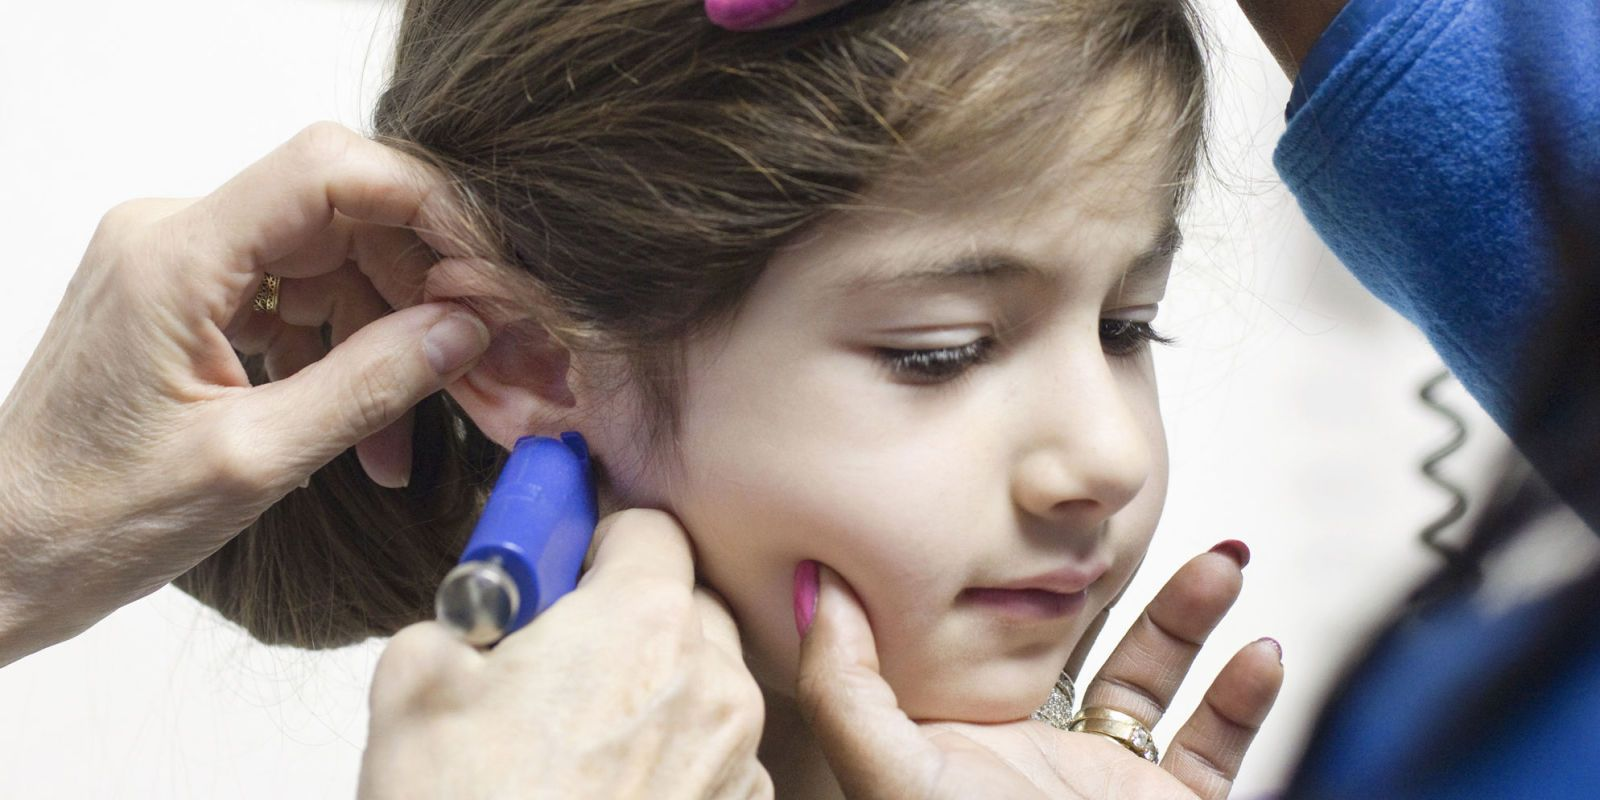 Nose piercing bump types  Why You Should Never Get Your Ears Pierced at the Mall  Ear